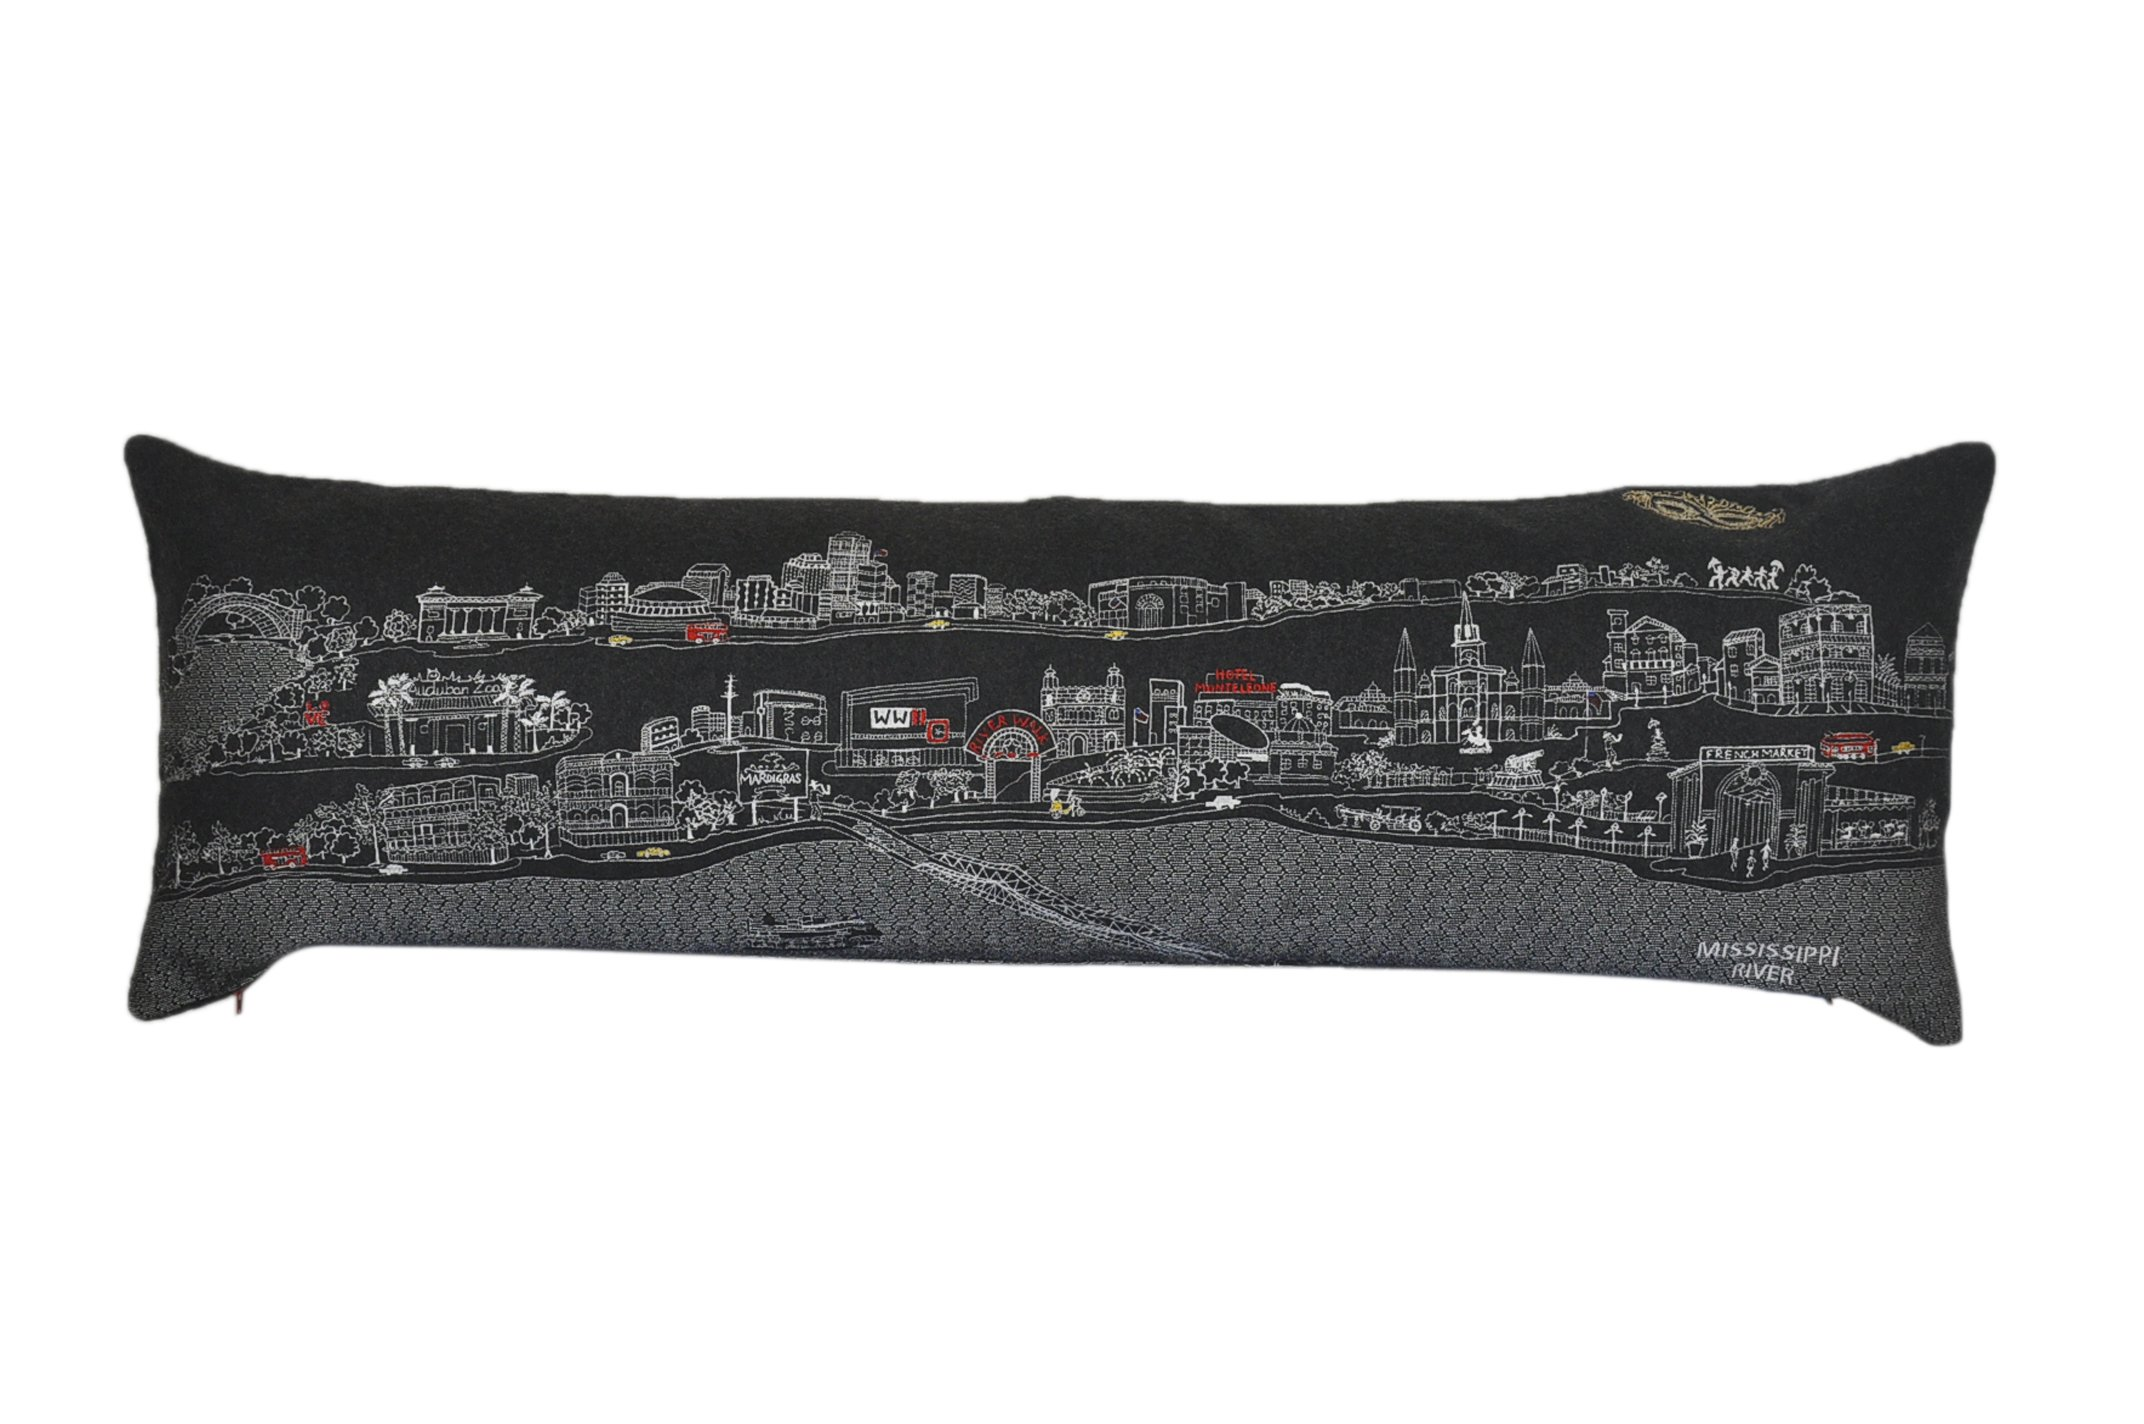 Beyond Cushions Polyester Throw Pillows Beyond Cushions New Orleans Night Skyline King Size Embroidered Accent Pillow 46 X 14 X 5 Inches Black